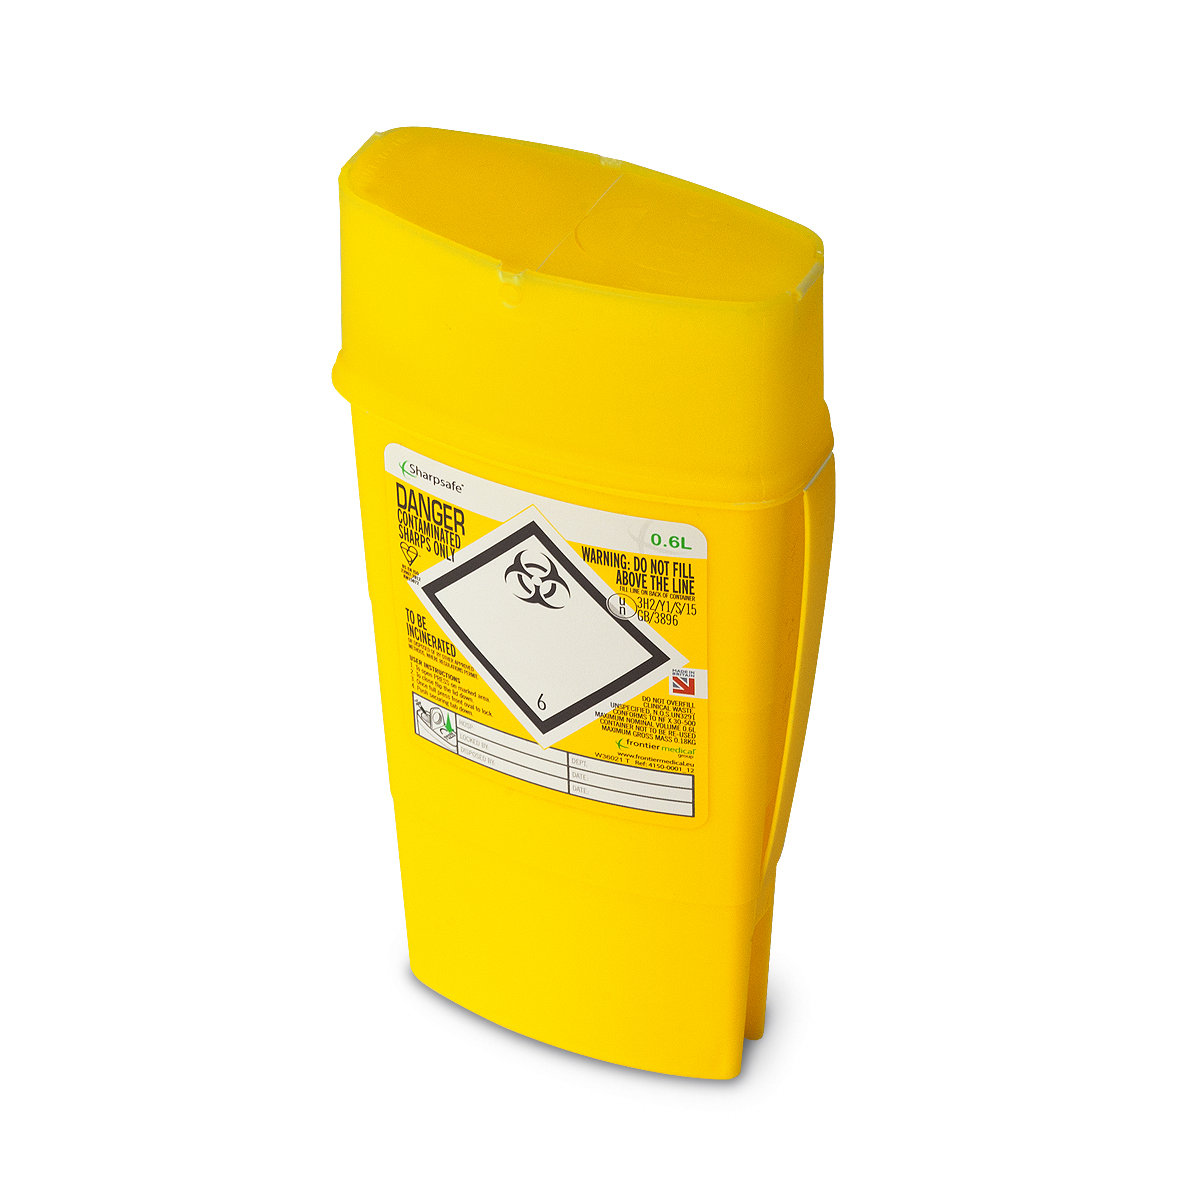 Frontier 0.6 litre sharpsafe (yellow)